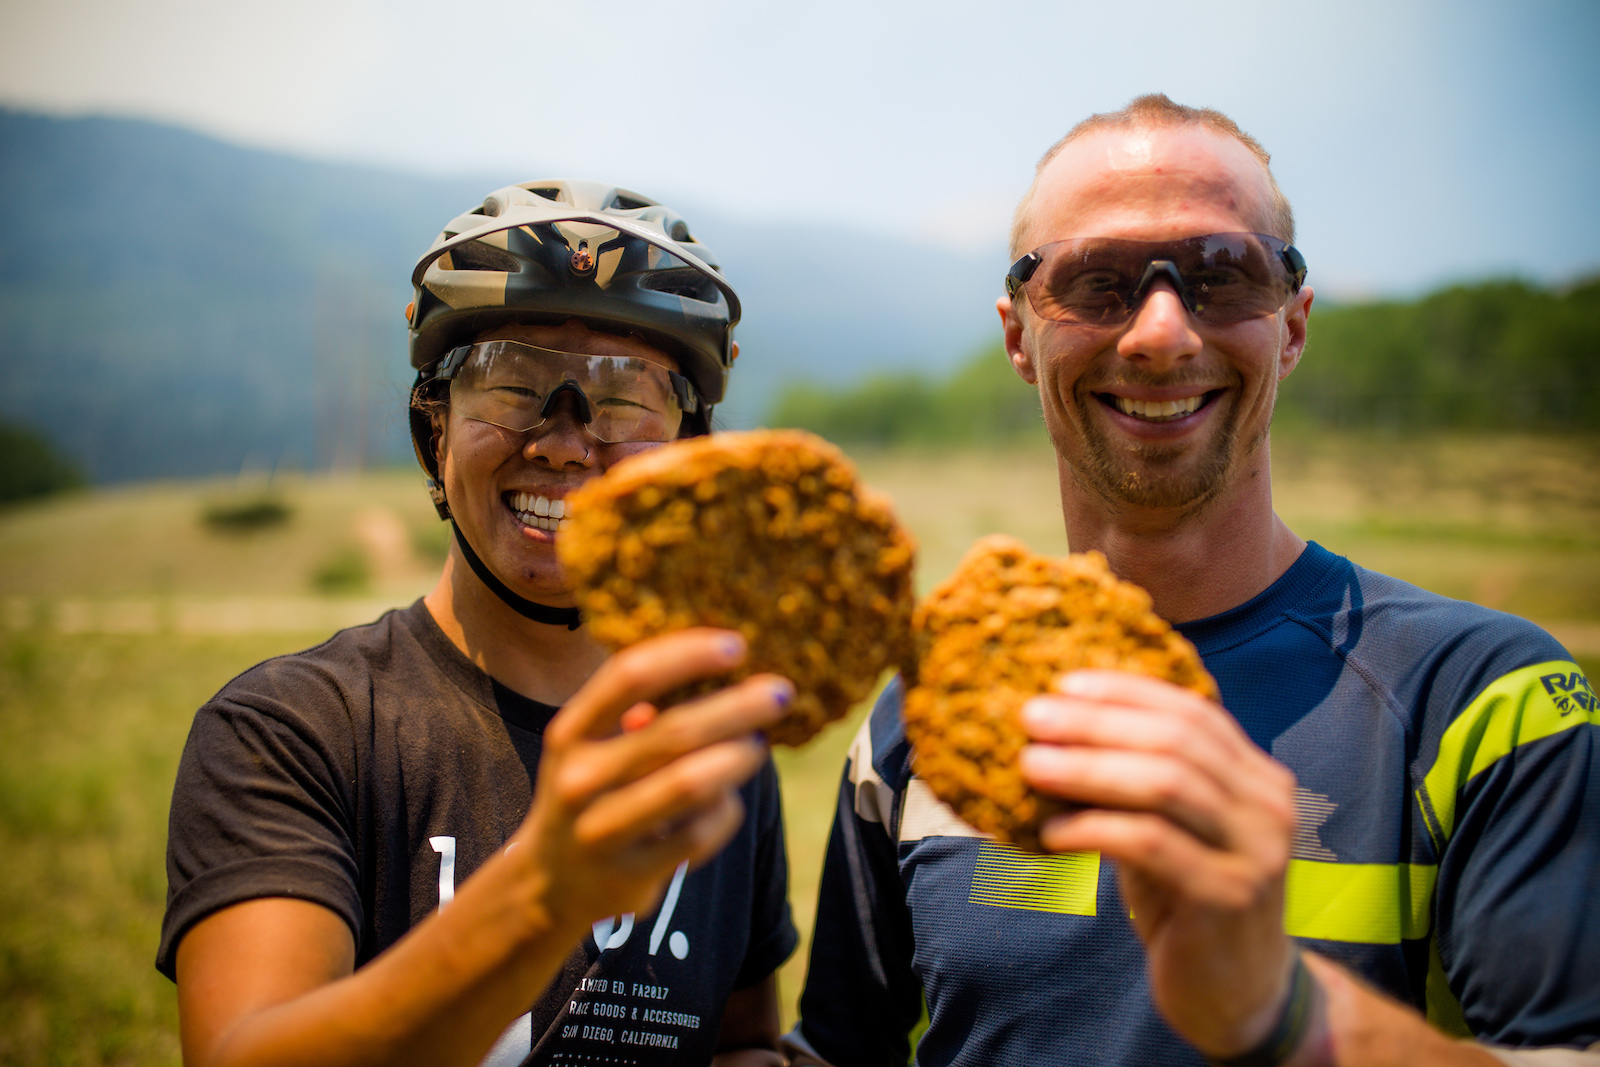 After the 10 mile trail Amy and Kevin were stoked to remember we had brought along some power cookies from Bread a bakery in town.